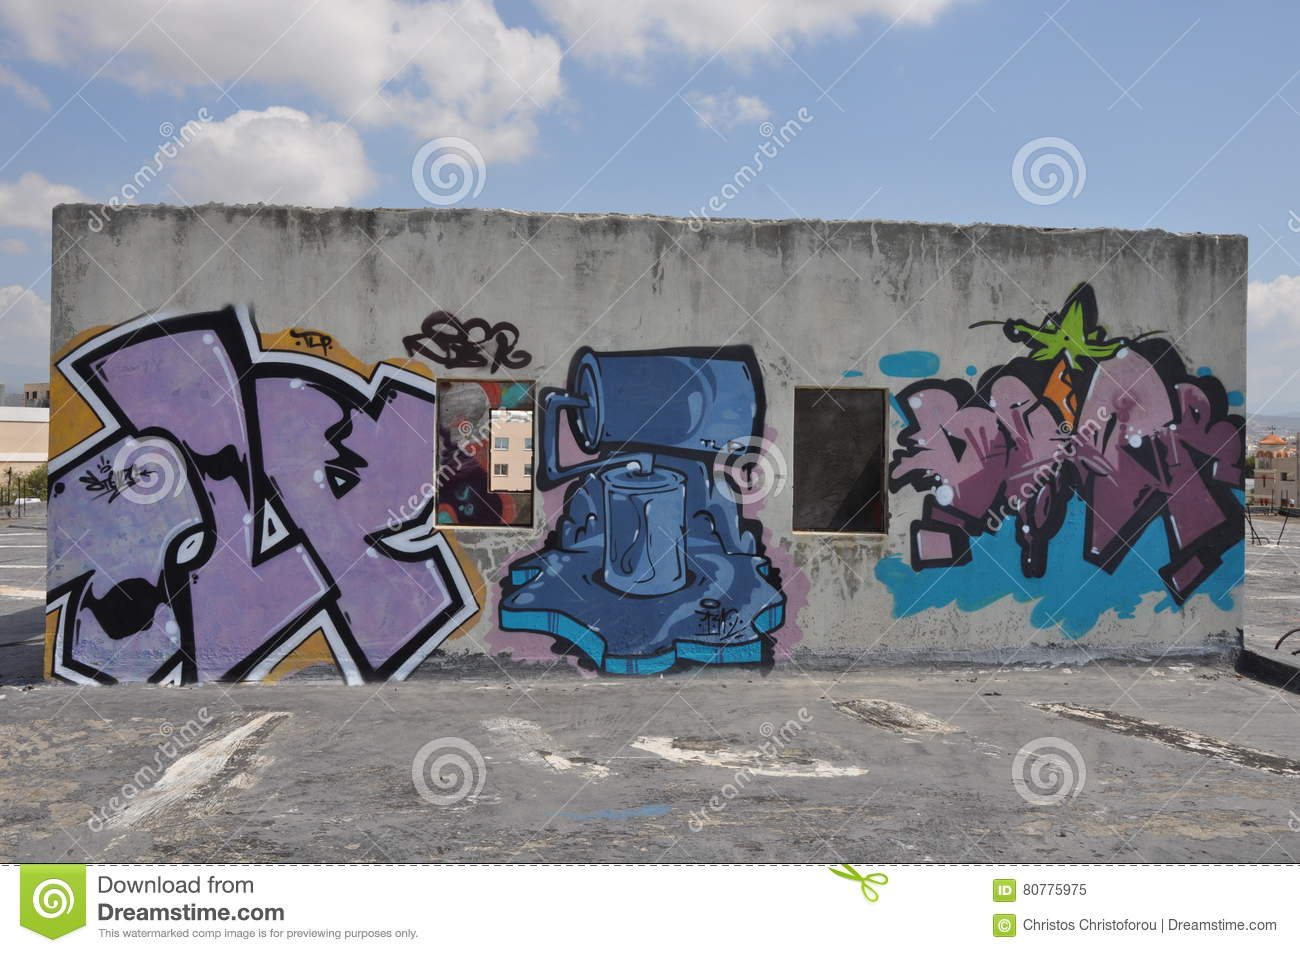 Graffiti Art Wall In Cyprus Editorial Image - Image of city